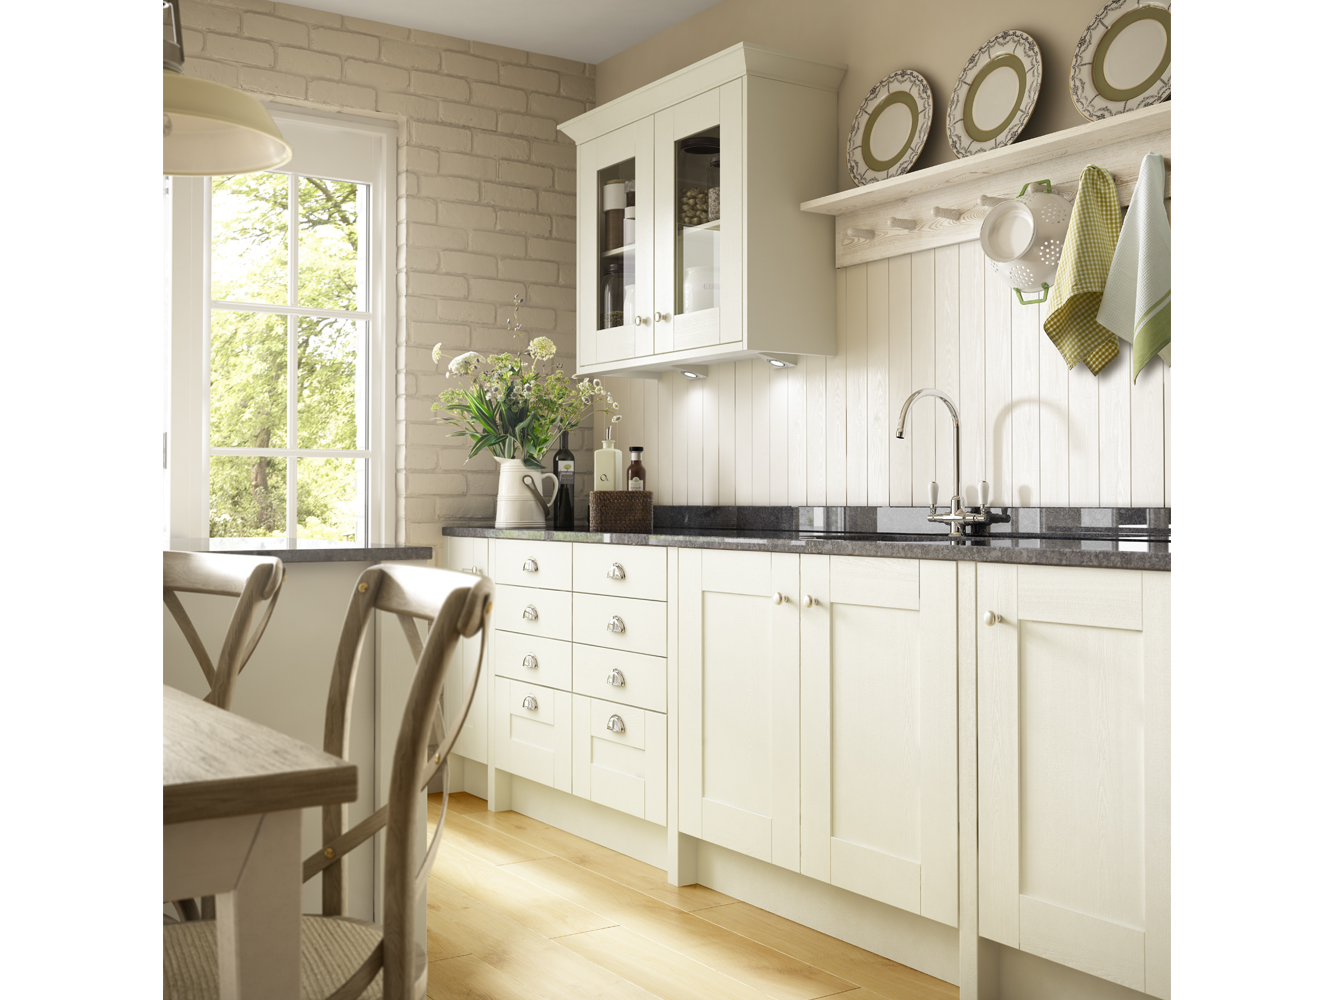 pix-us-cg-cream-kitchen